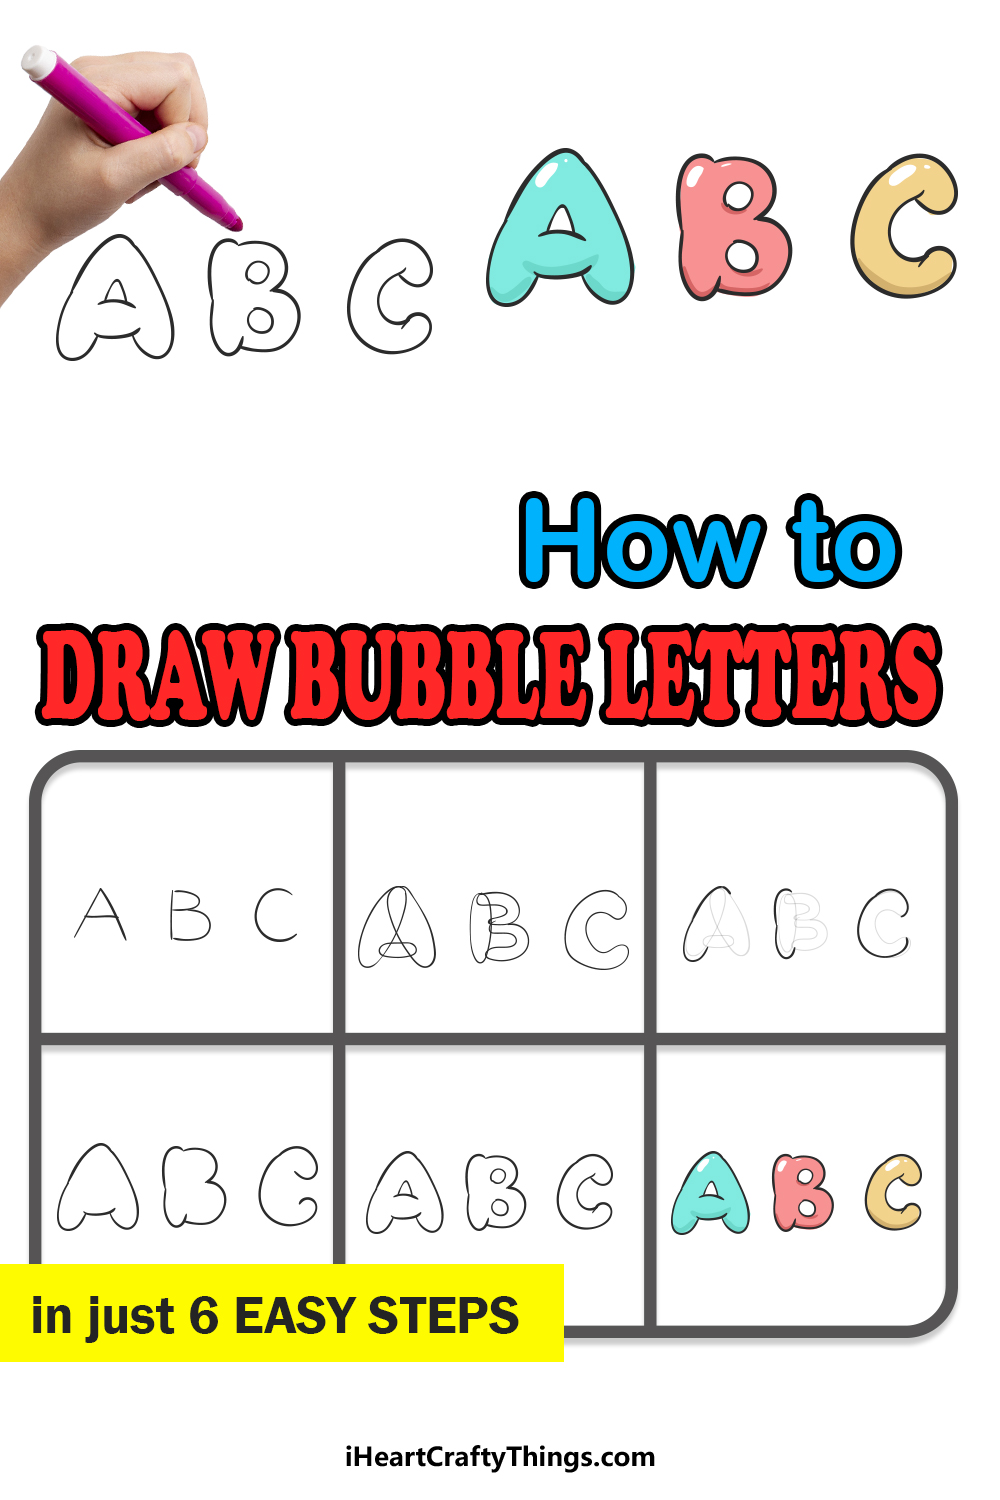 how to draw bubble letters in 6 easy steps